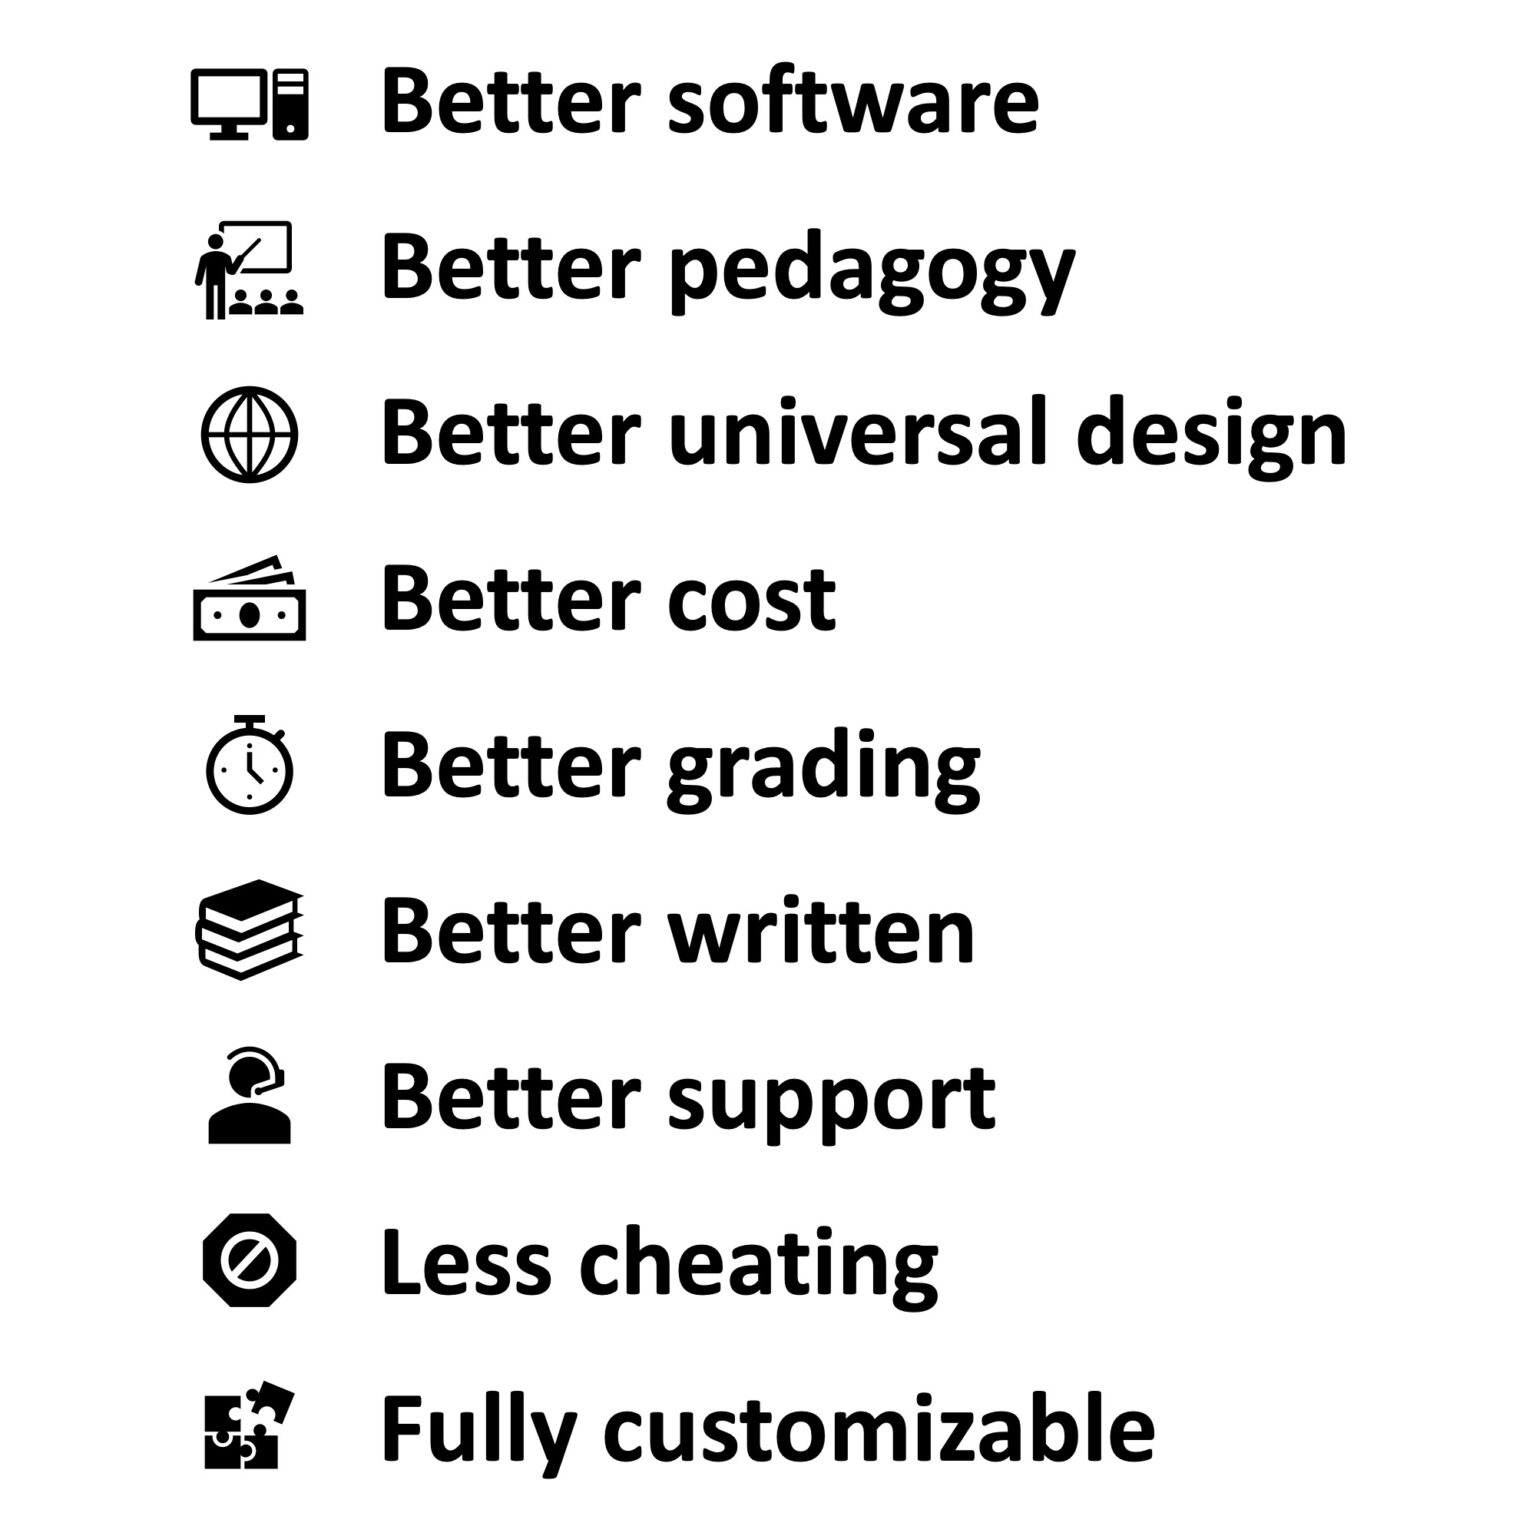 Better software, better pedagogy, better universal design, better cost, better grading, better written, better support, less cheating, fully customizable